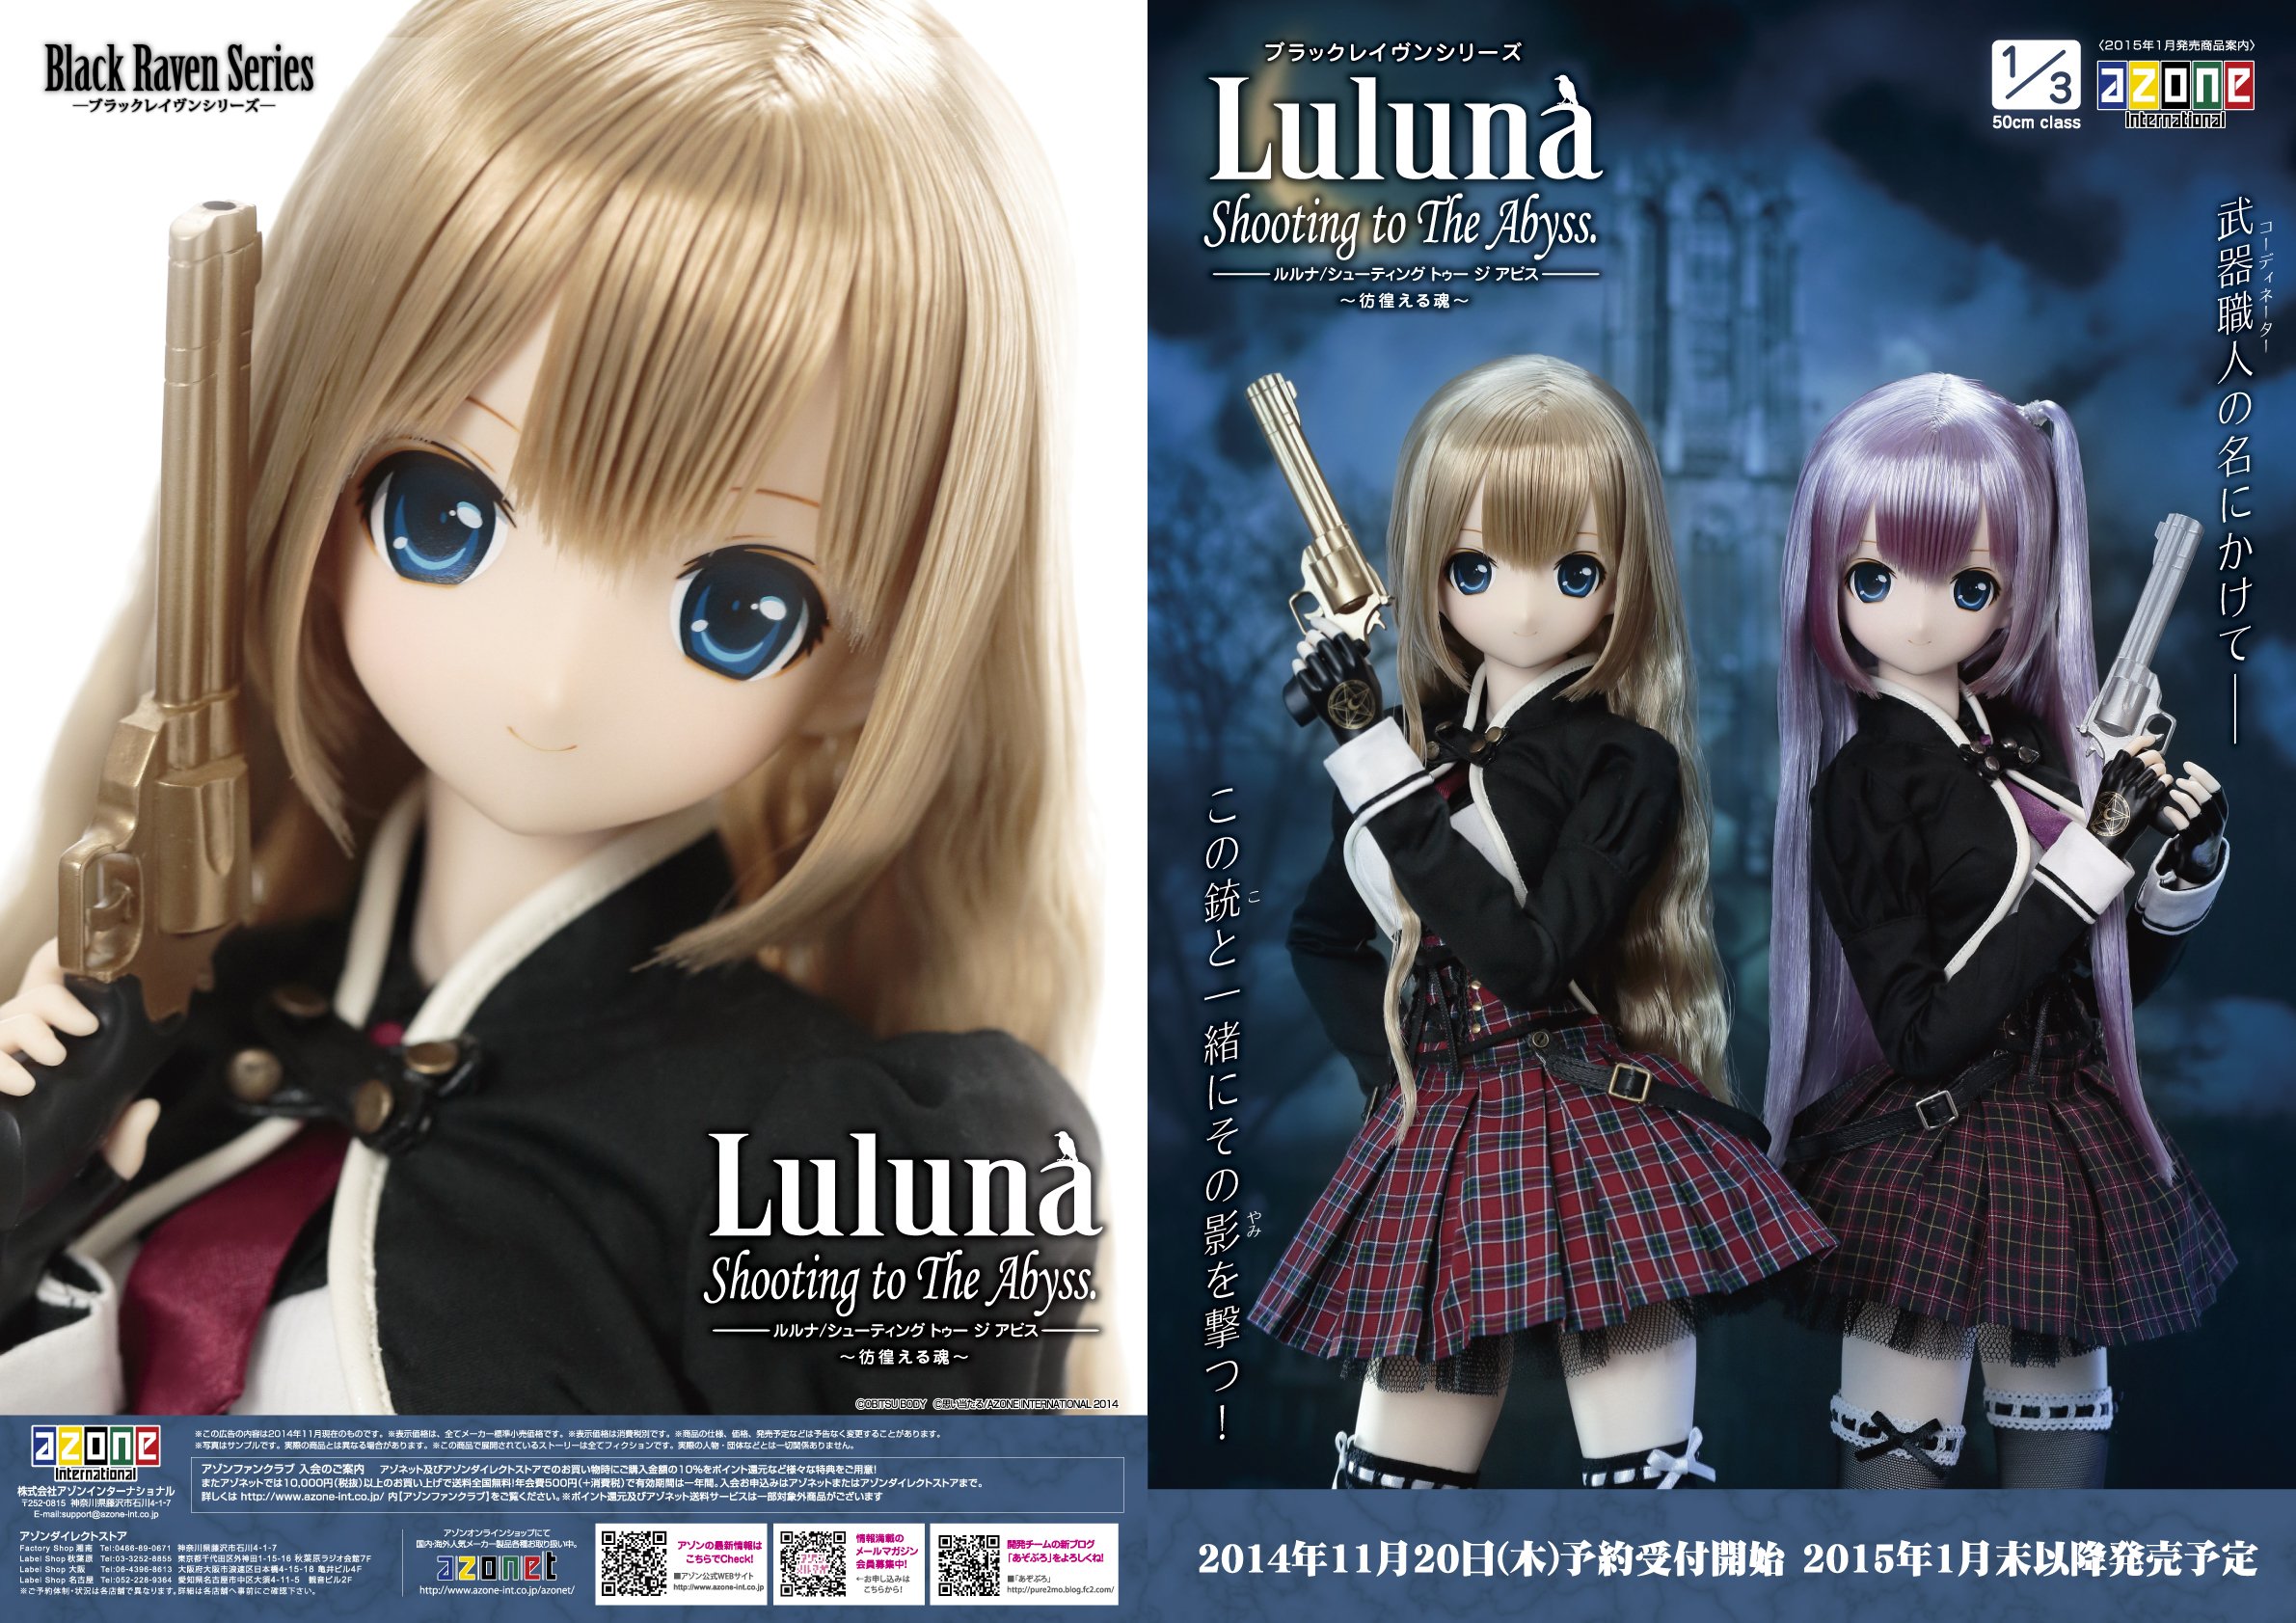 Luluna/Shooting to The Abyss. ~彷徨える魂~